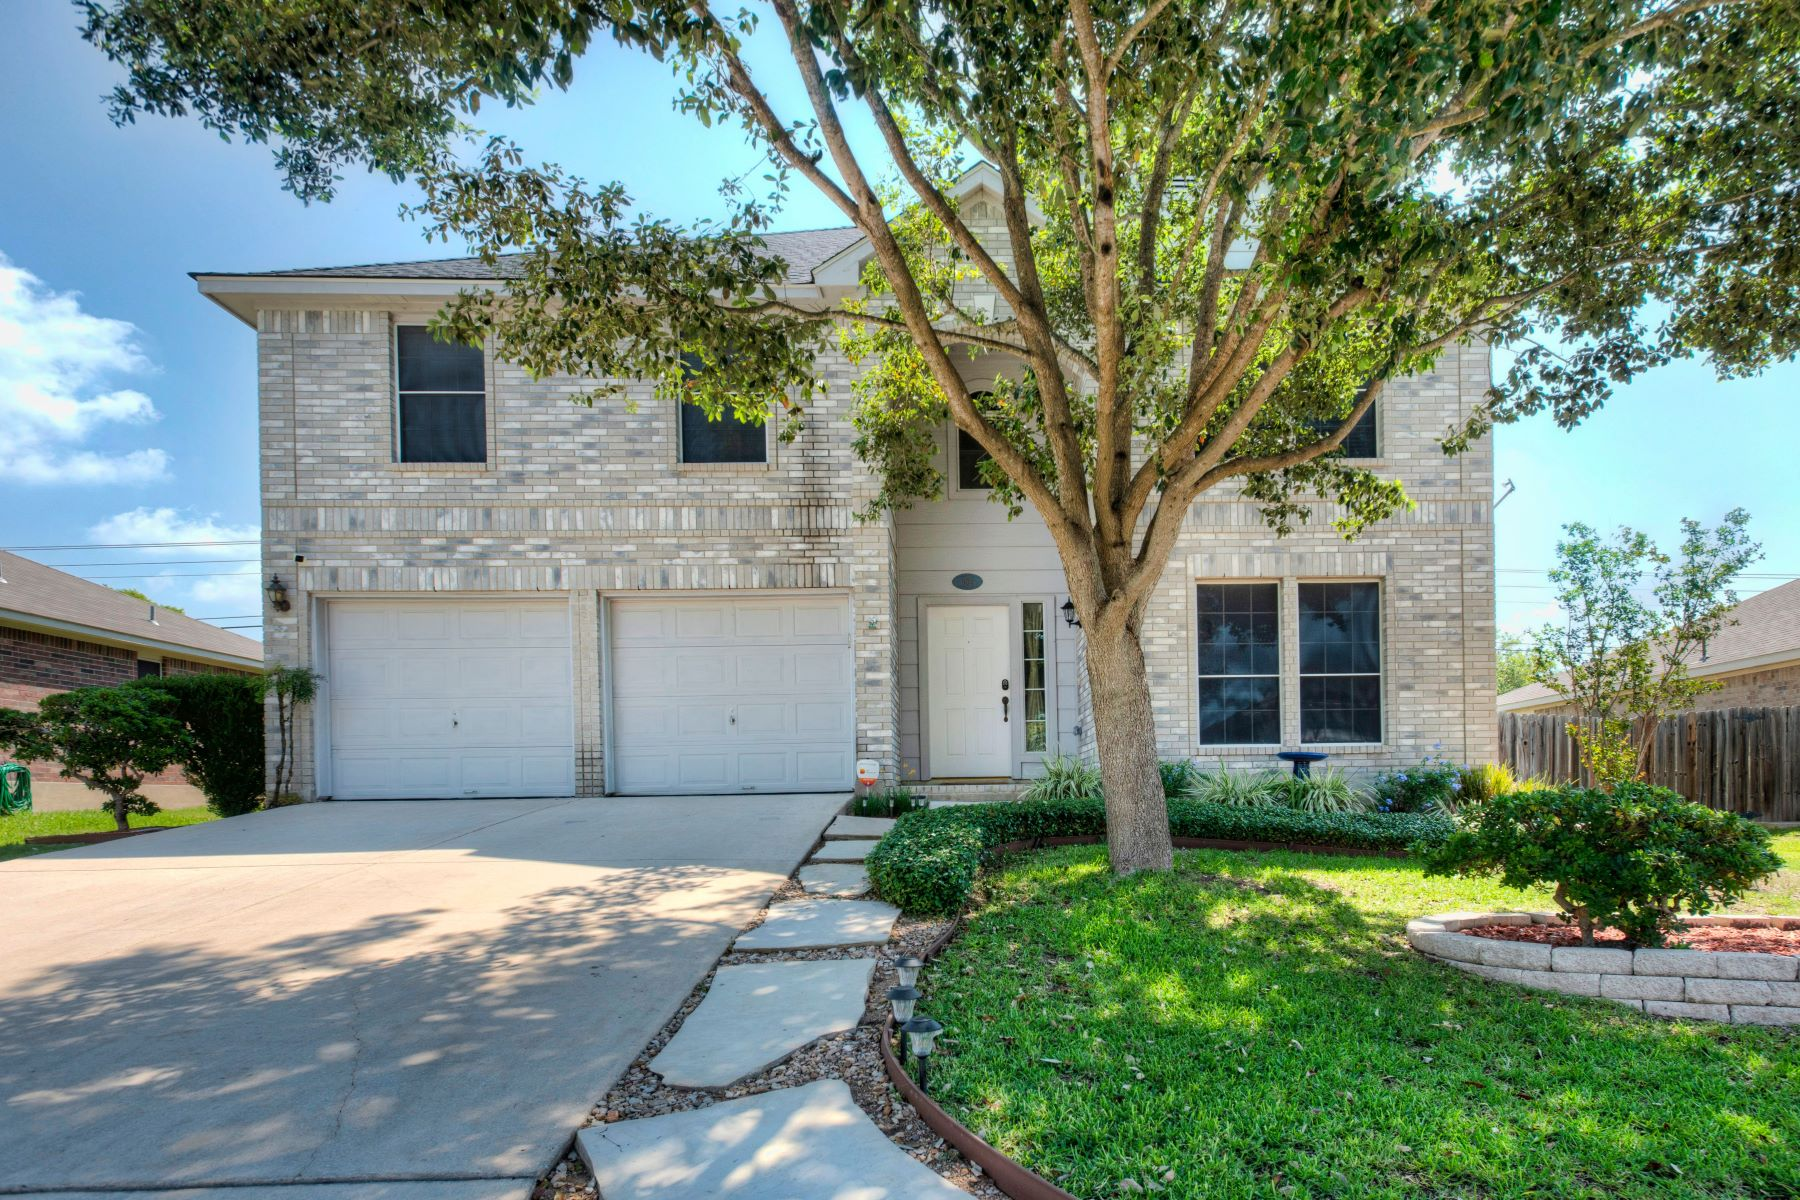 Single Family Homes for Sale at 904 Bending Brook Drive, Schertz, TX 78154 904 Bending Brook Drive Schertz, Texas 78154 United States